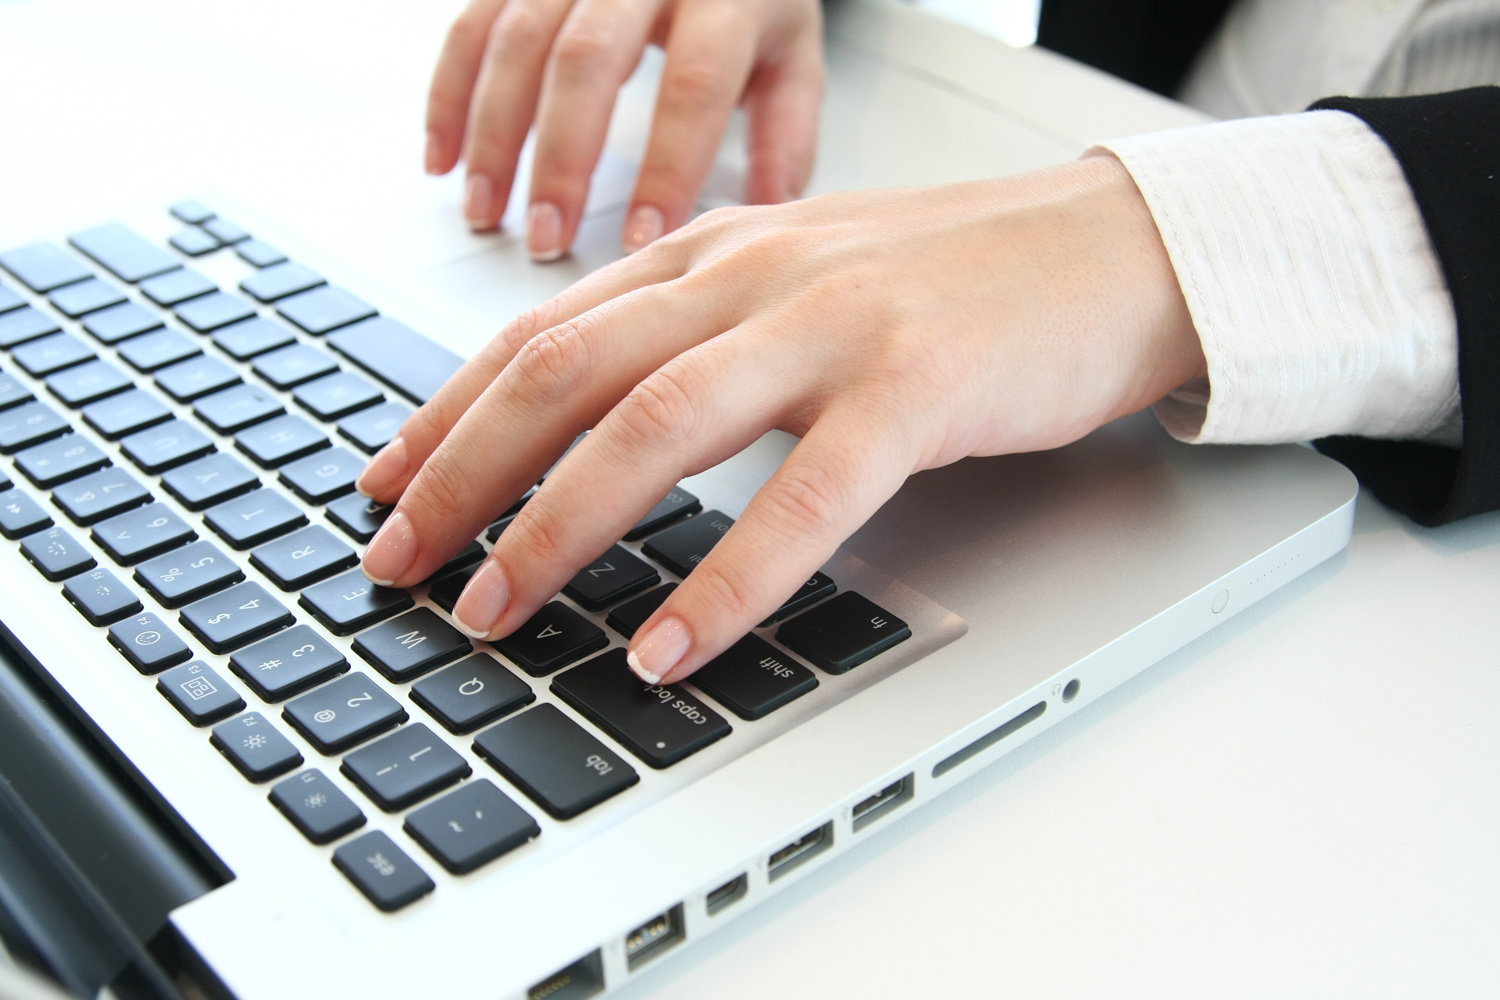 A hand typing on a compuer